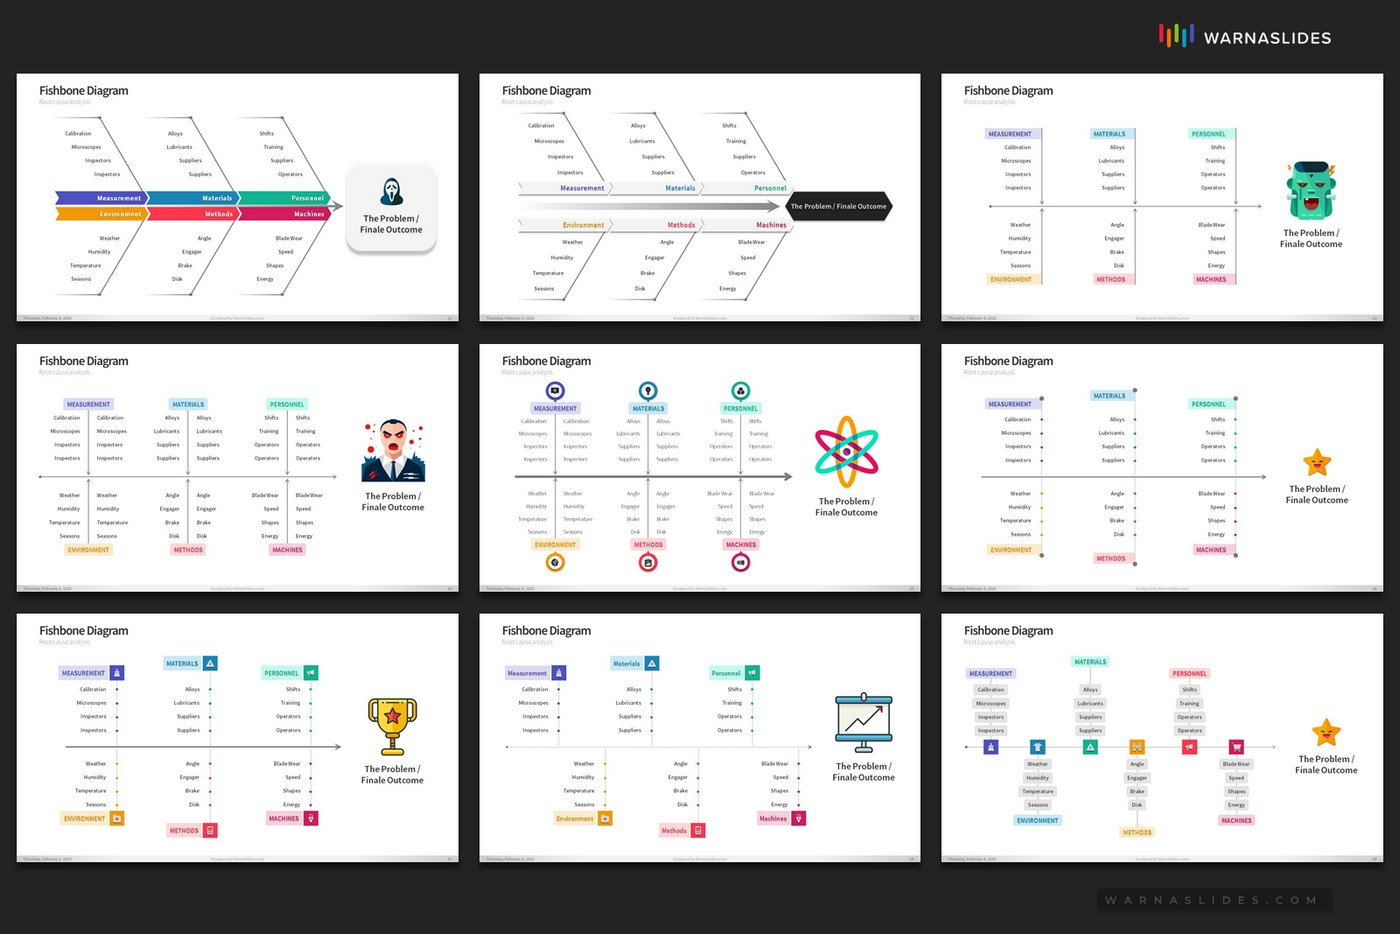 Fishbone-Ishikawa-Root-Cause-Analysis-Diagram-PowerPoint-Template-for-Business-Pitch-Deck-Professional-Creative-PowerPoint-Icons-007